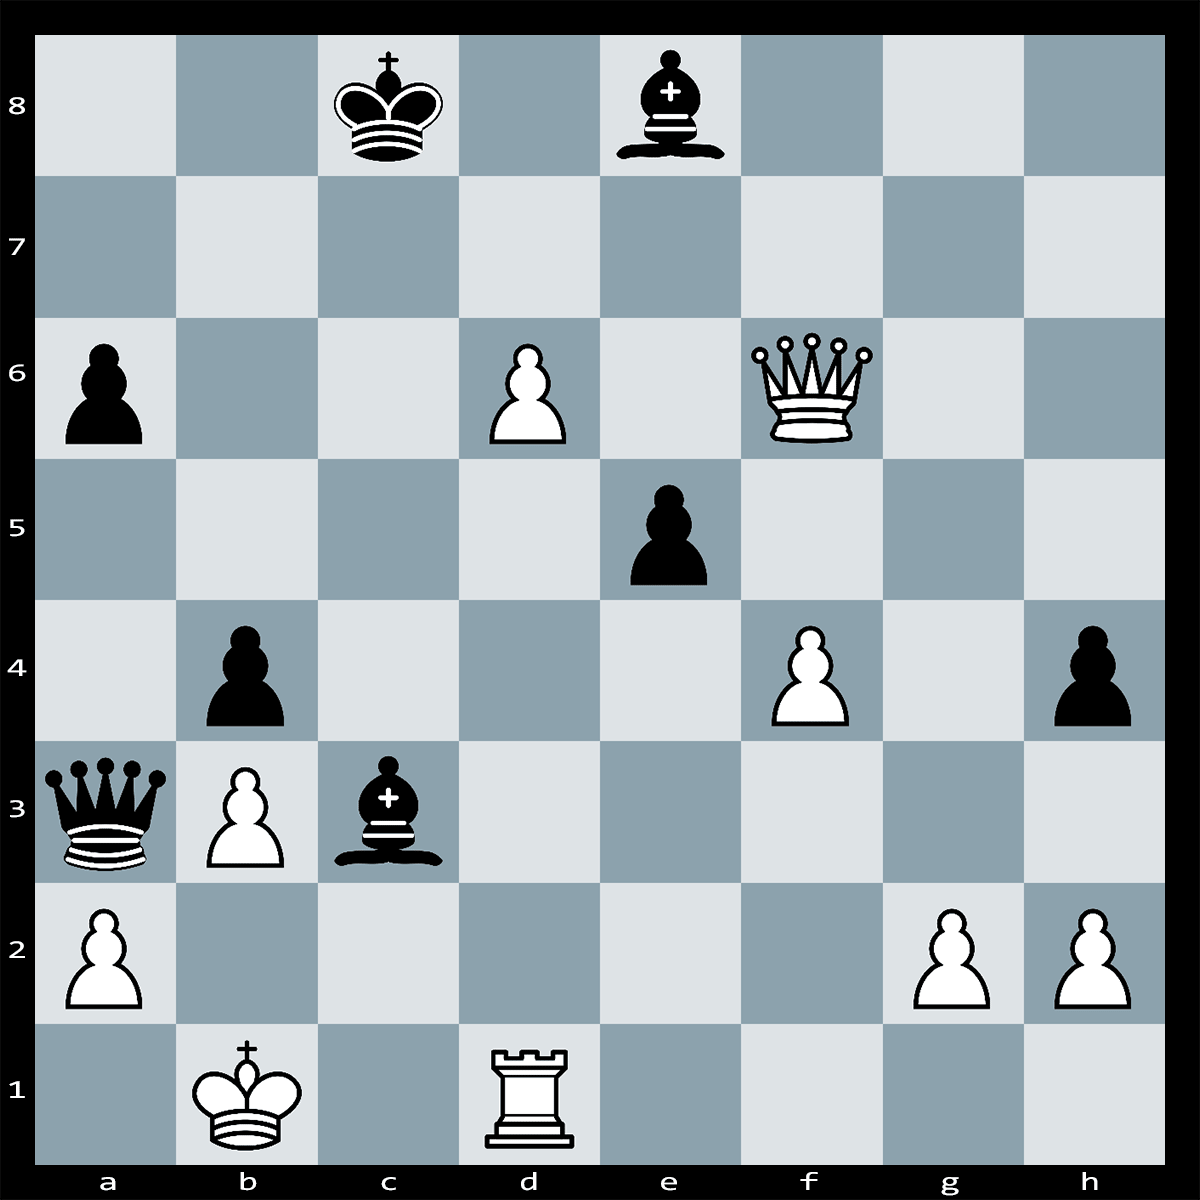 Chess Puzzle #348 | White to play and Win, It should not take more than 8 moves to win the game.